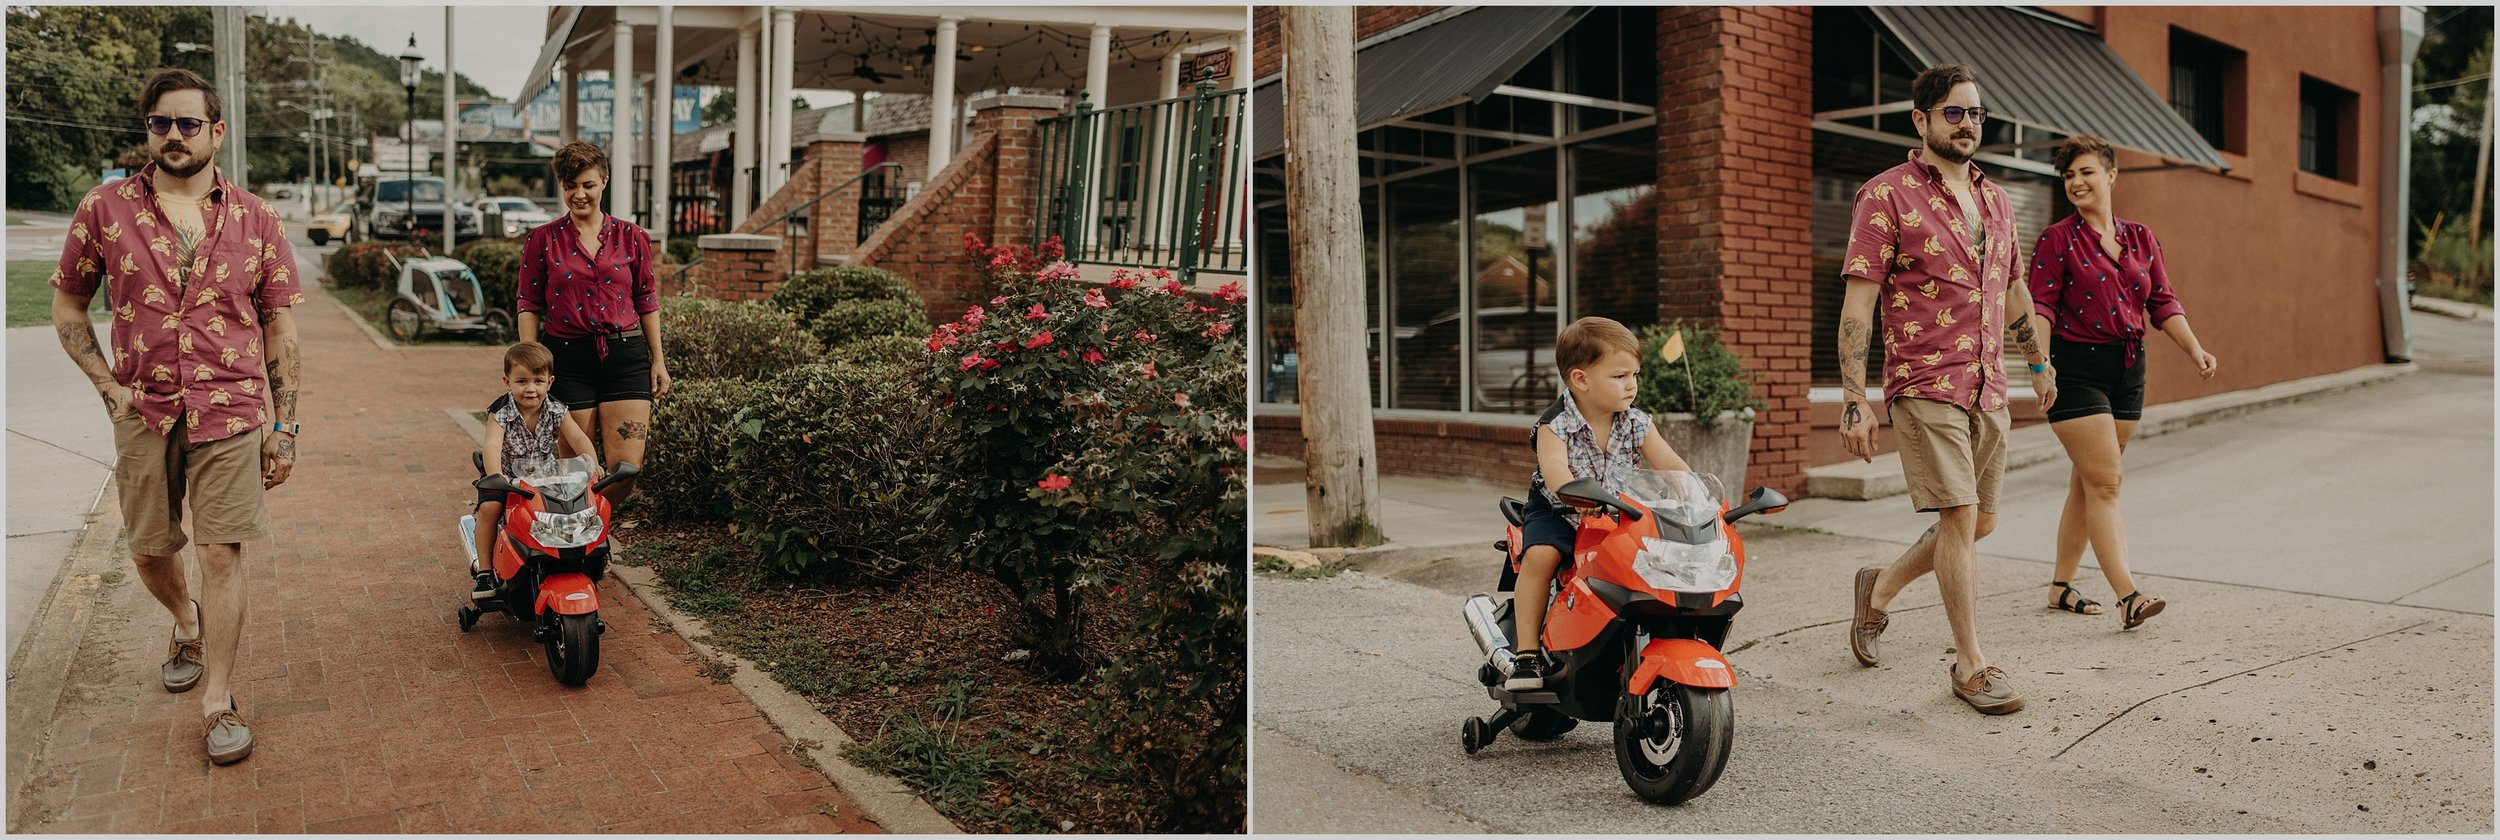 An urban family photo session in St. Elmo, Chattanooga, Tennessee